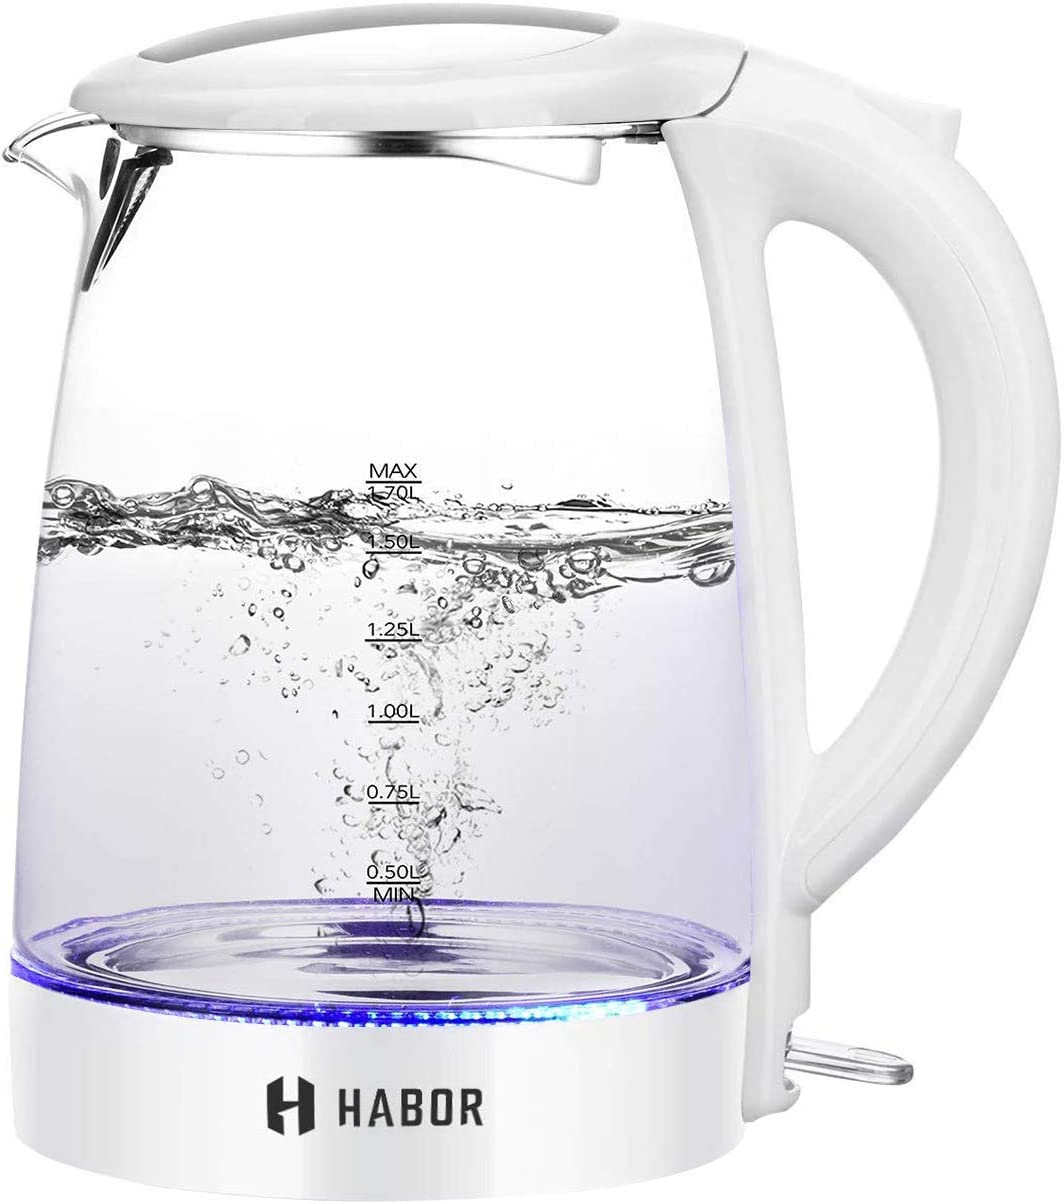 Habor Electric Kettle, BPA-Free Hot Water Kettle, 1500W 1.7L Fast Boiling Glass Kettle with Blue LED Light, Auto Shut-Off & Boil-Dry Protection, Stainless Steel Inner Lip & Bottom